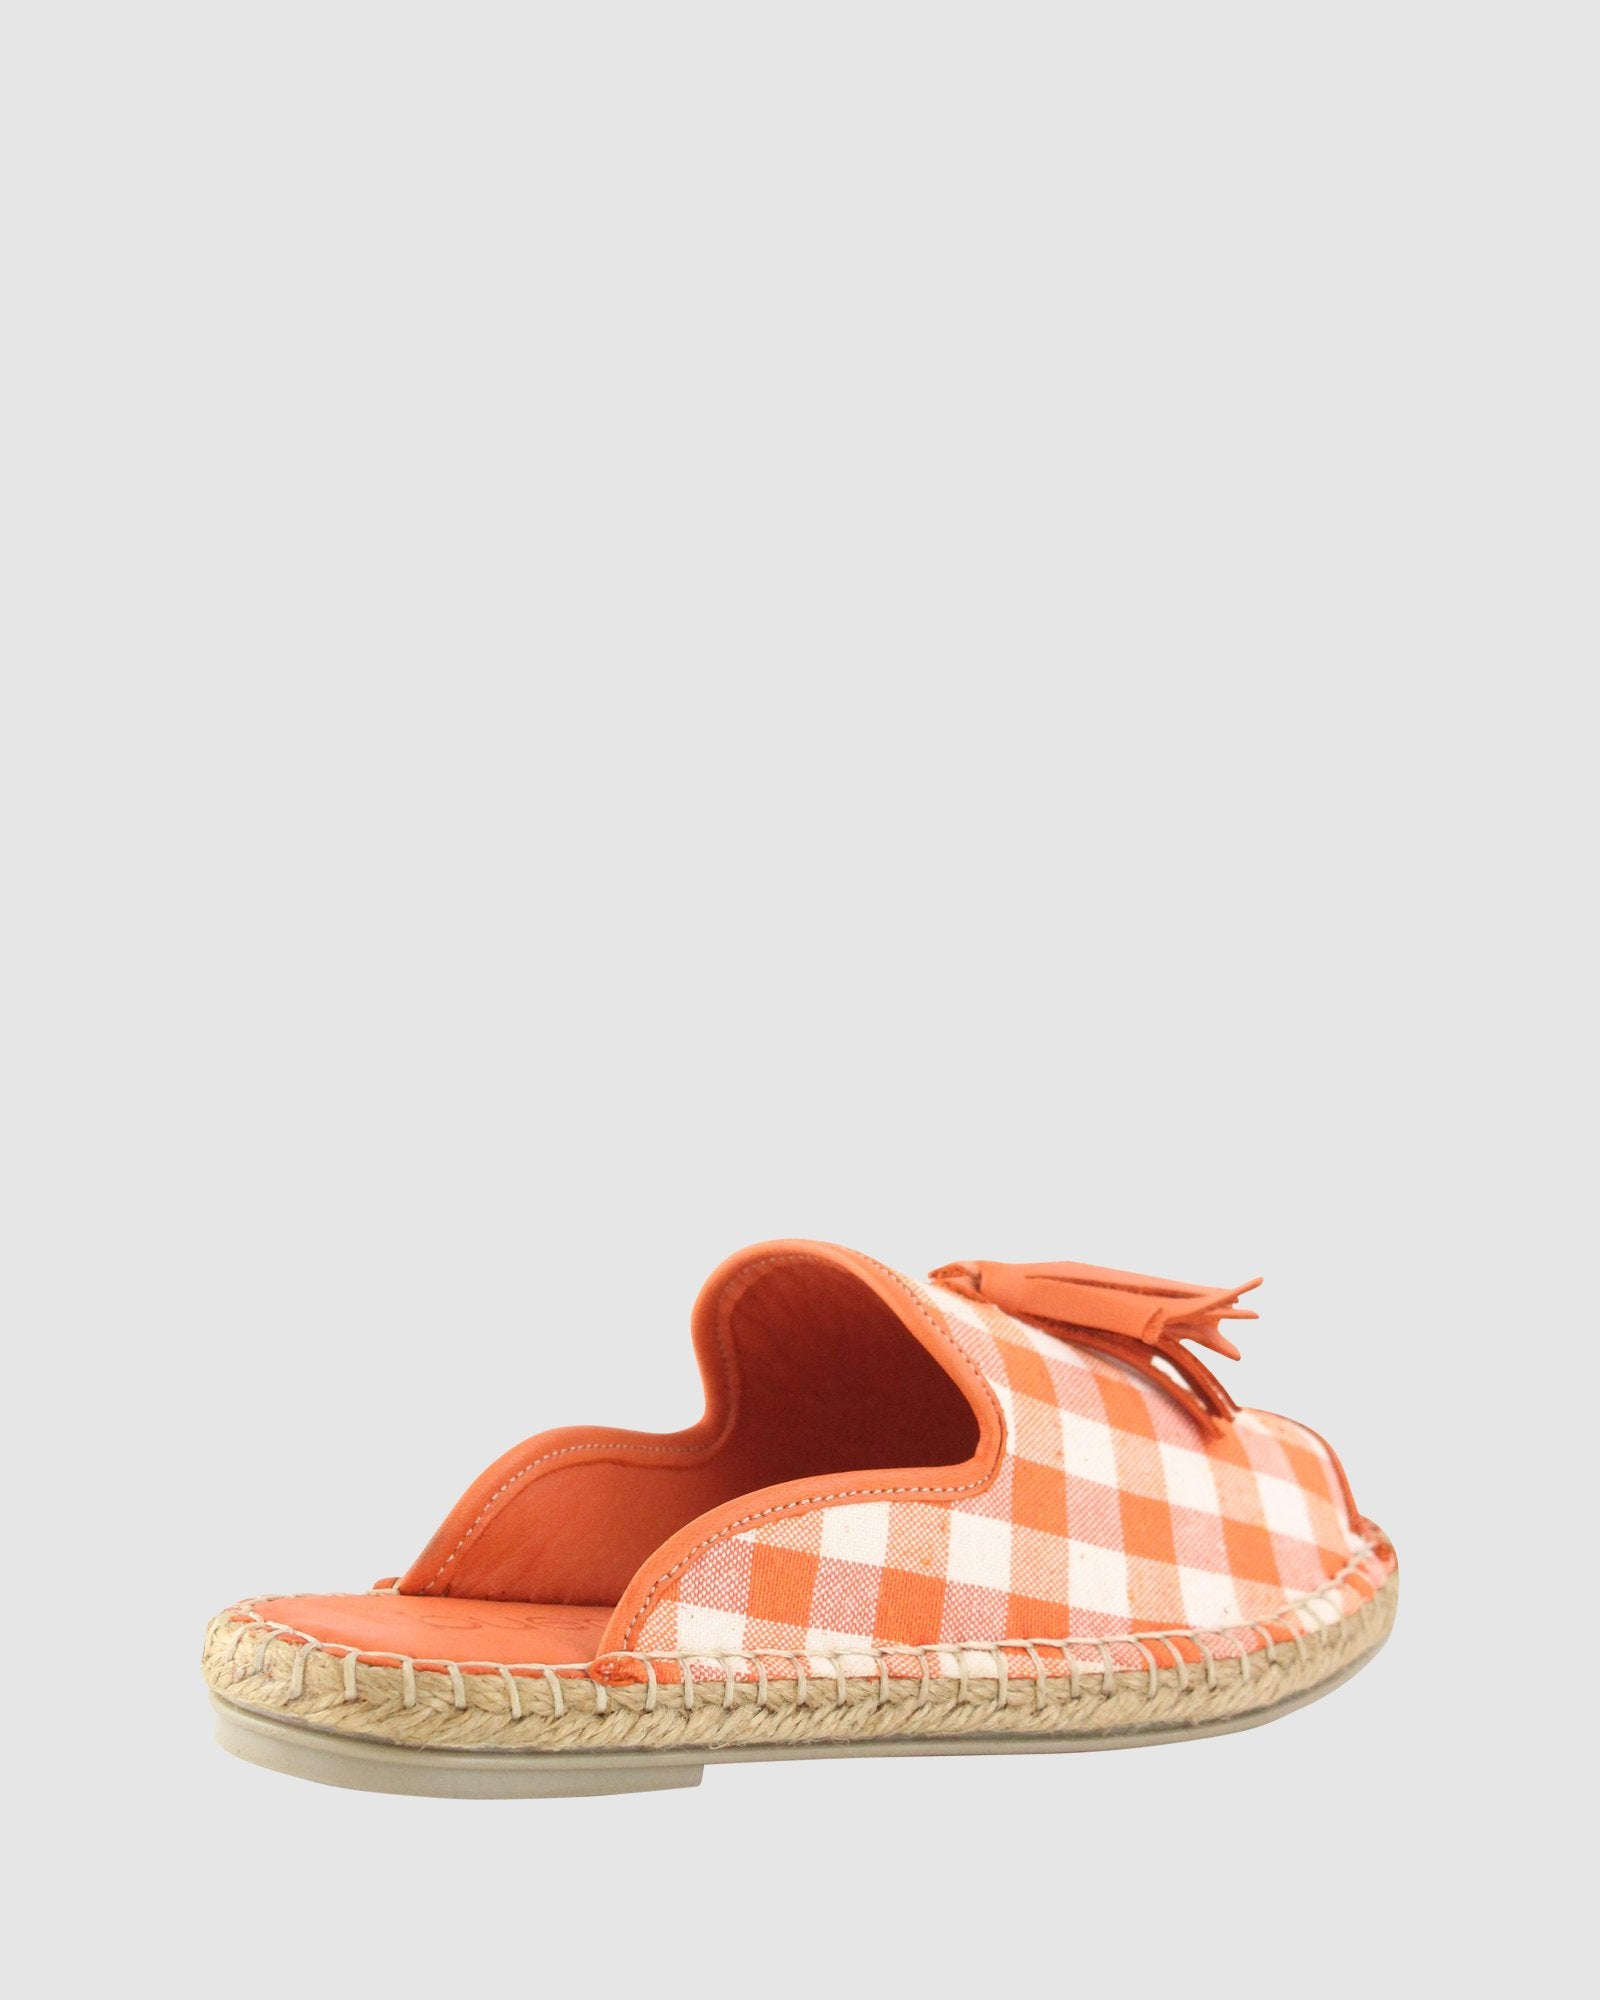 Kind Slide in Kroket Gingham